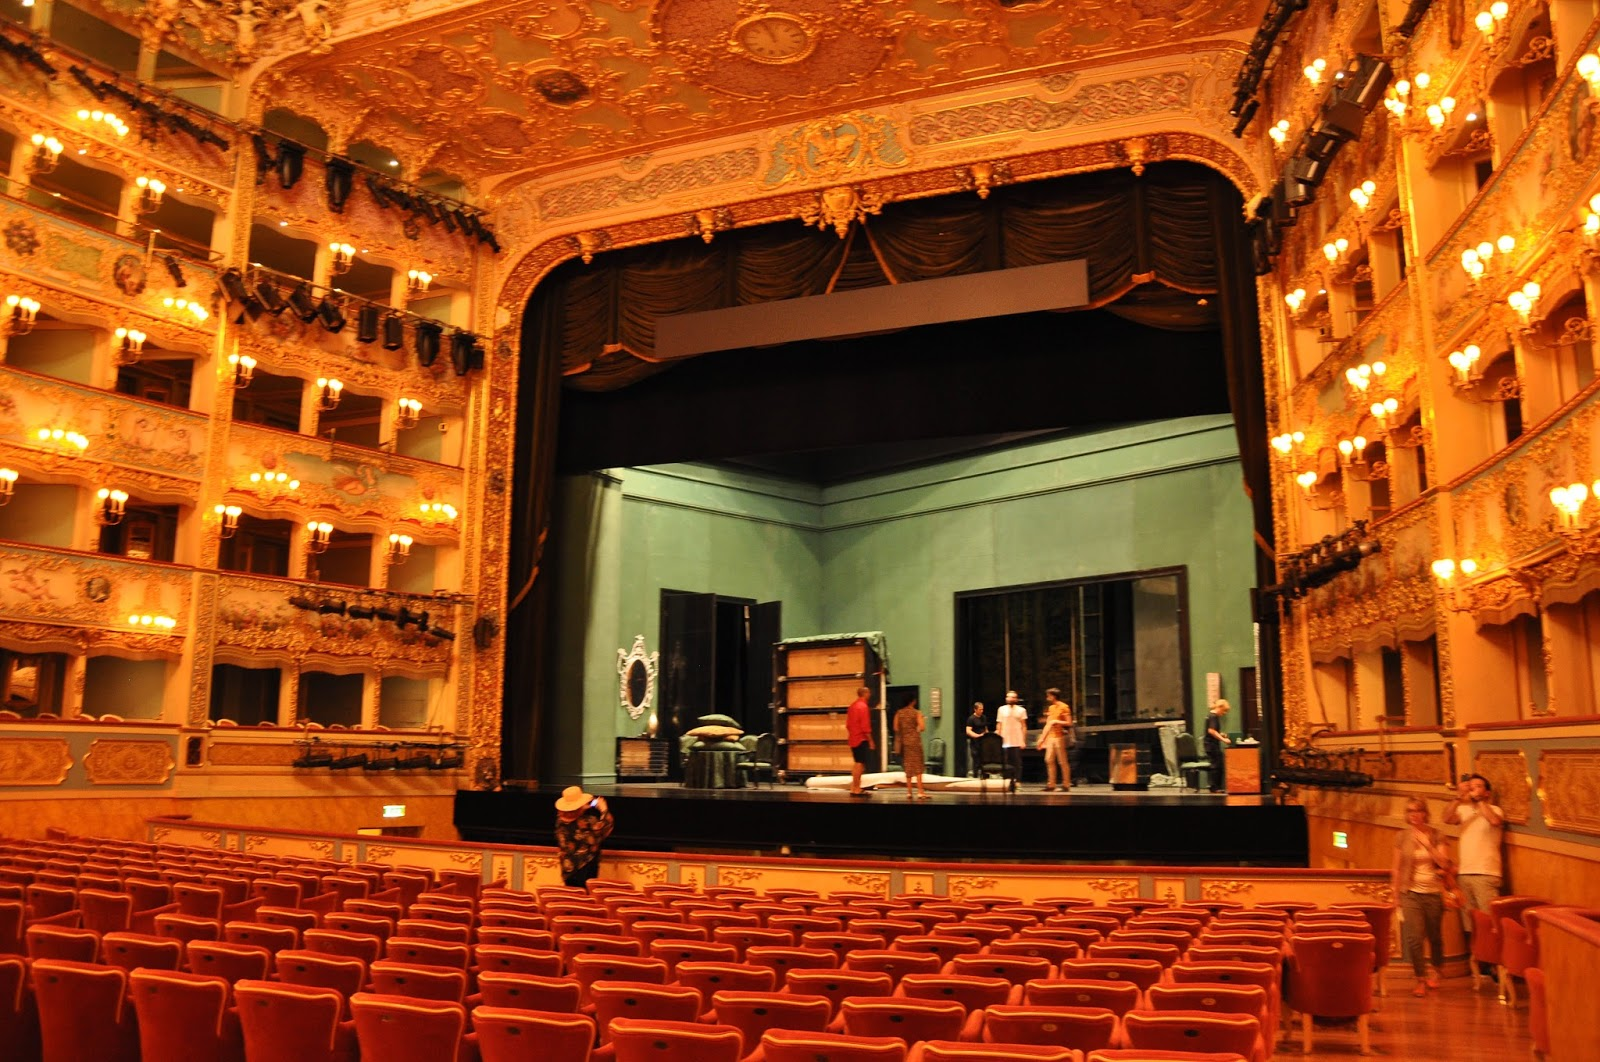 Inside the theatre hall, La Fenice, Venice, Italy